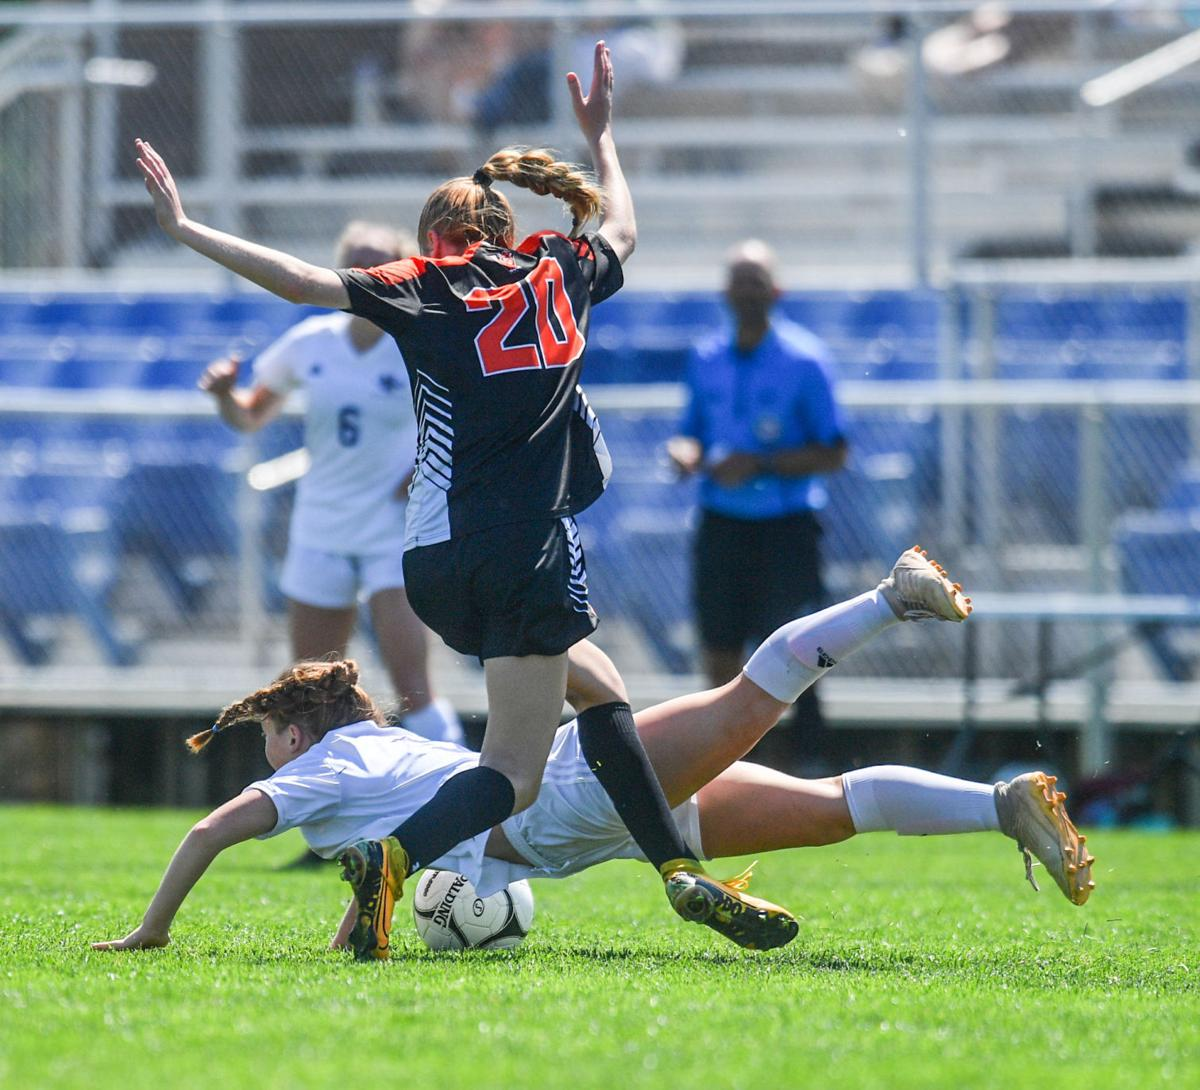 060821-qc-spt-iowa-state-soccer-muscatine-001